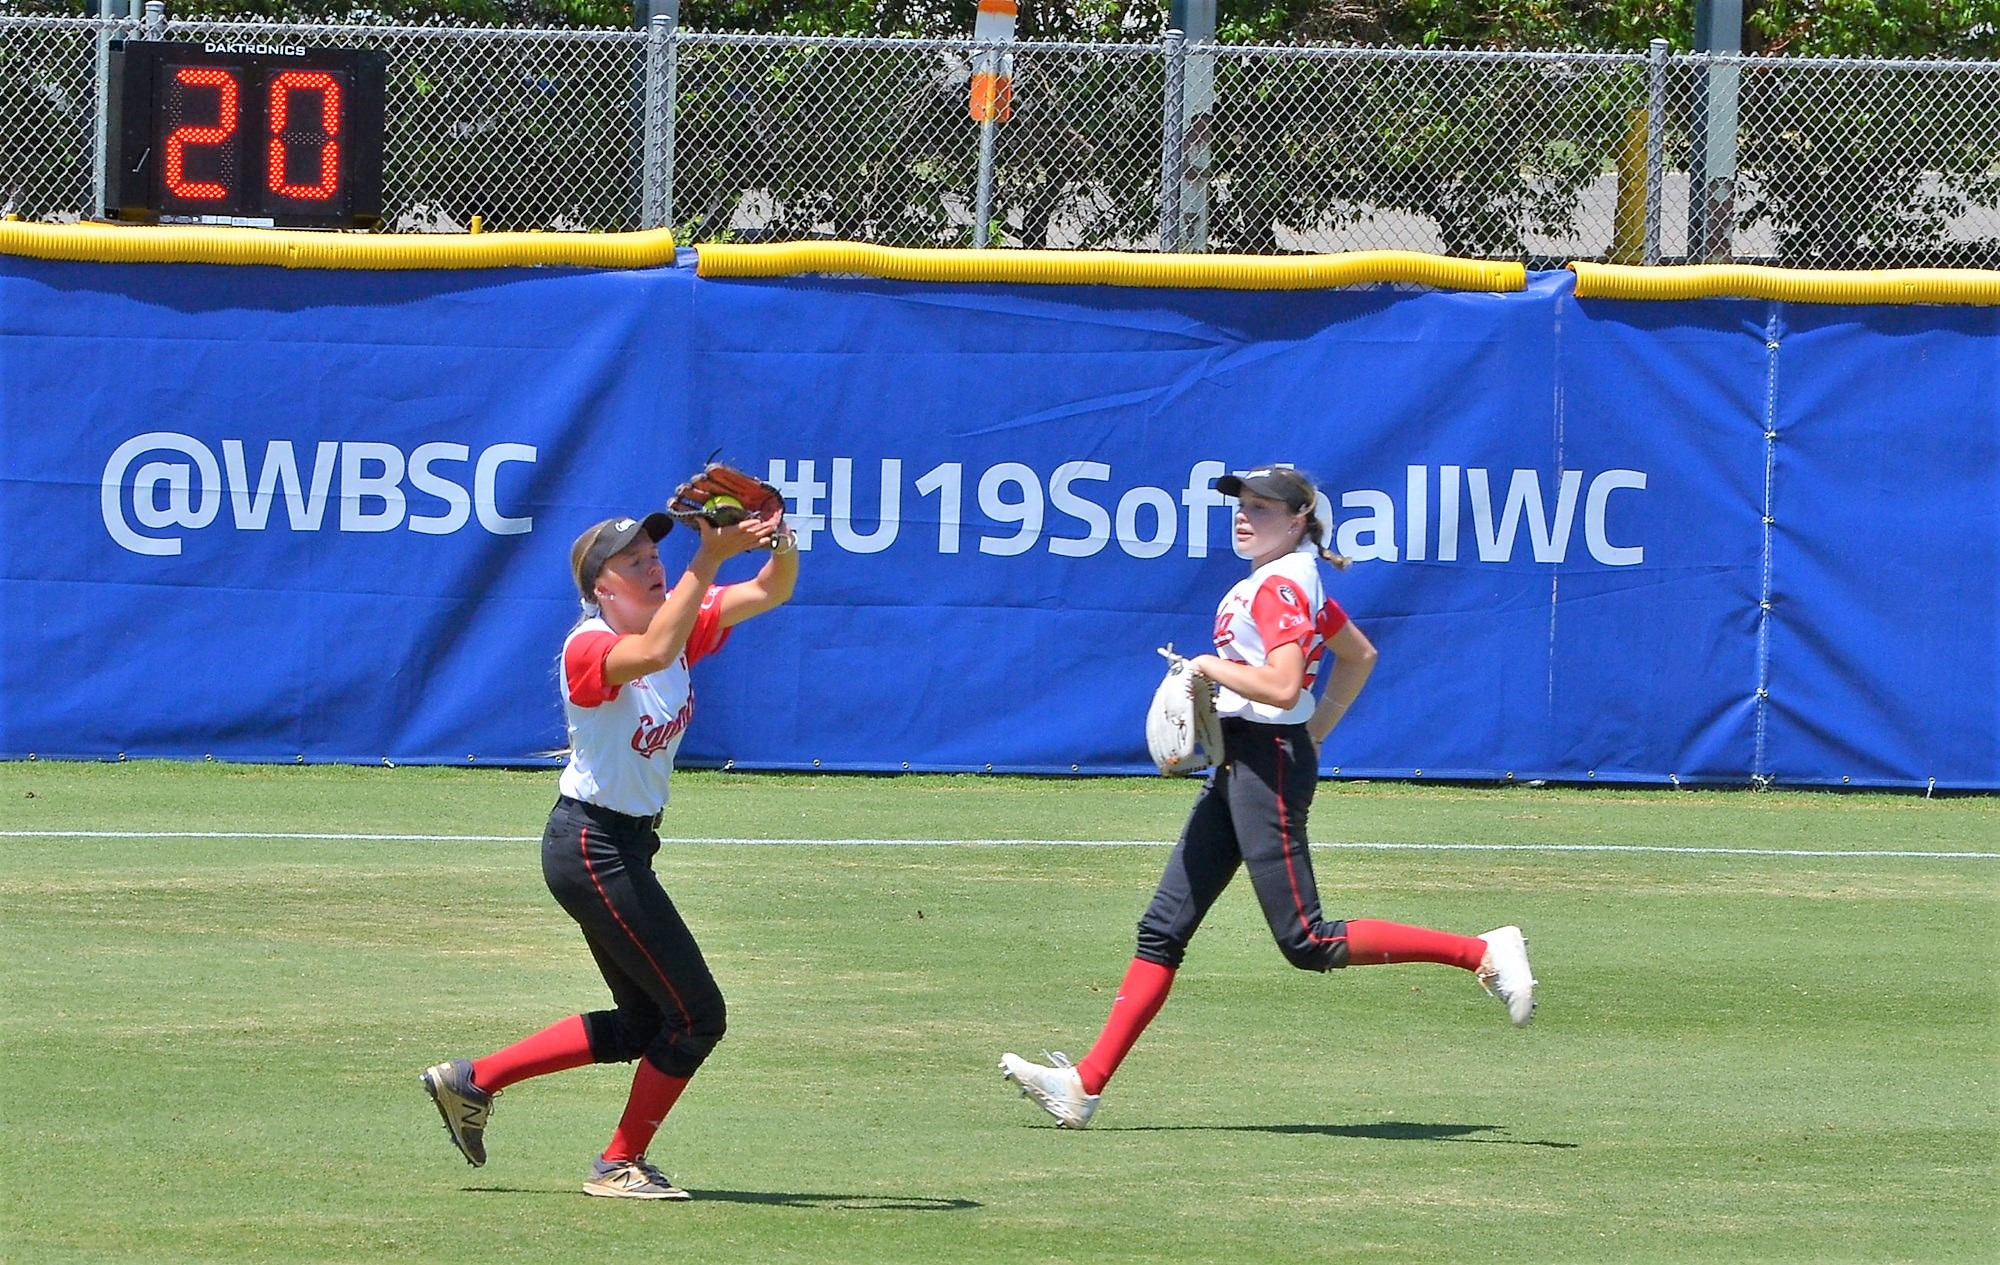 Canada's outfield at work